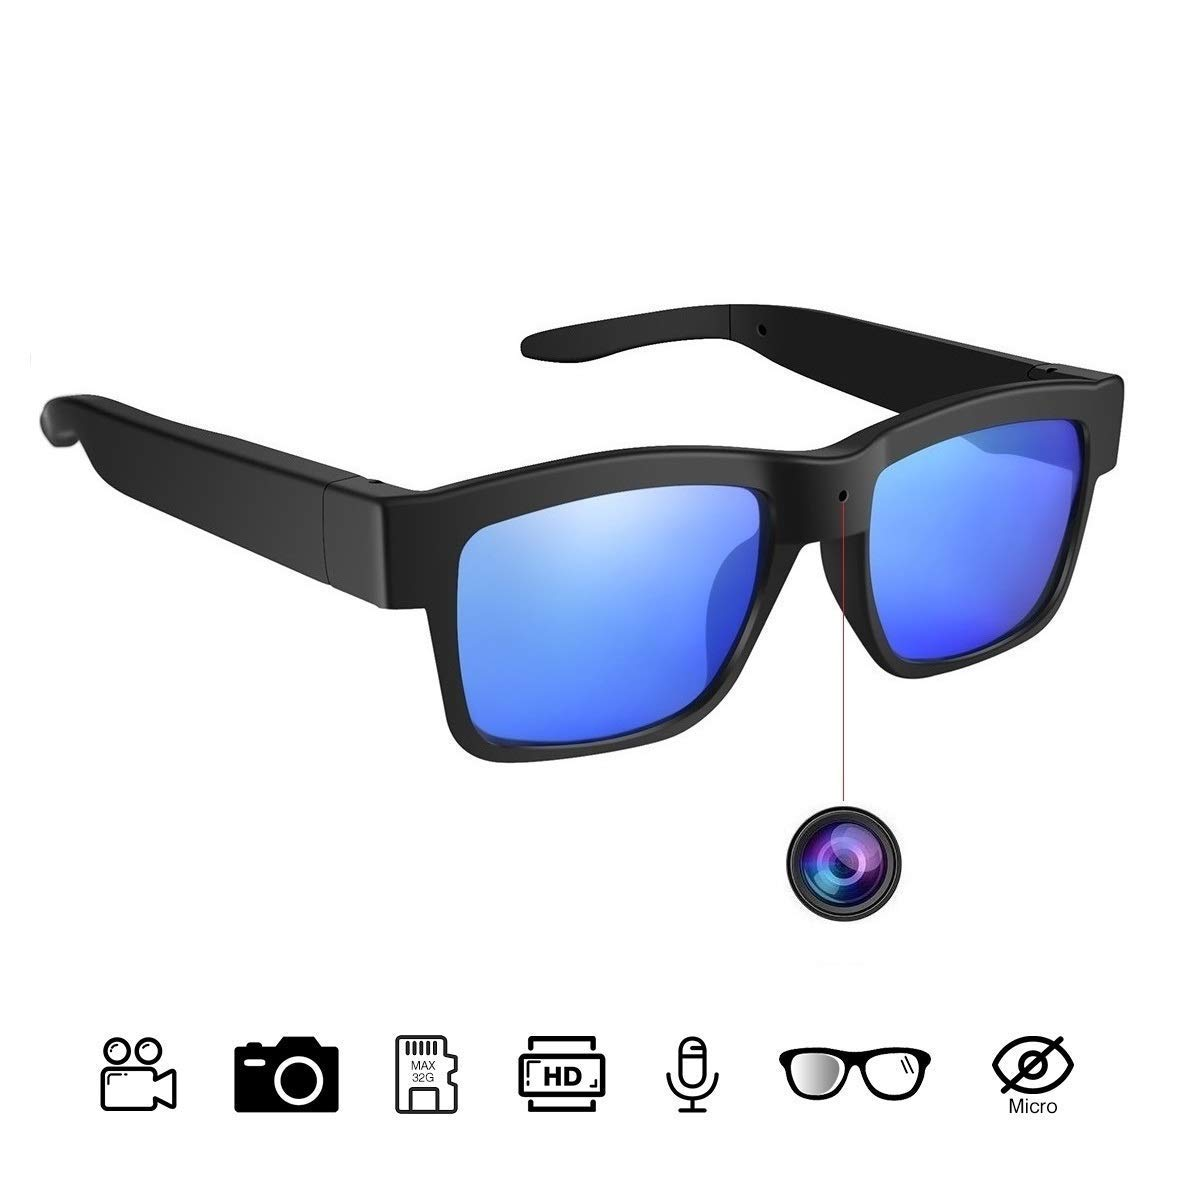 Sunglasses Camera Full HD 1080P, 65 Degree Angle for Outdoor Use,Mini Video Camera with UV Protection Polarized Lens by MIOTA